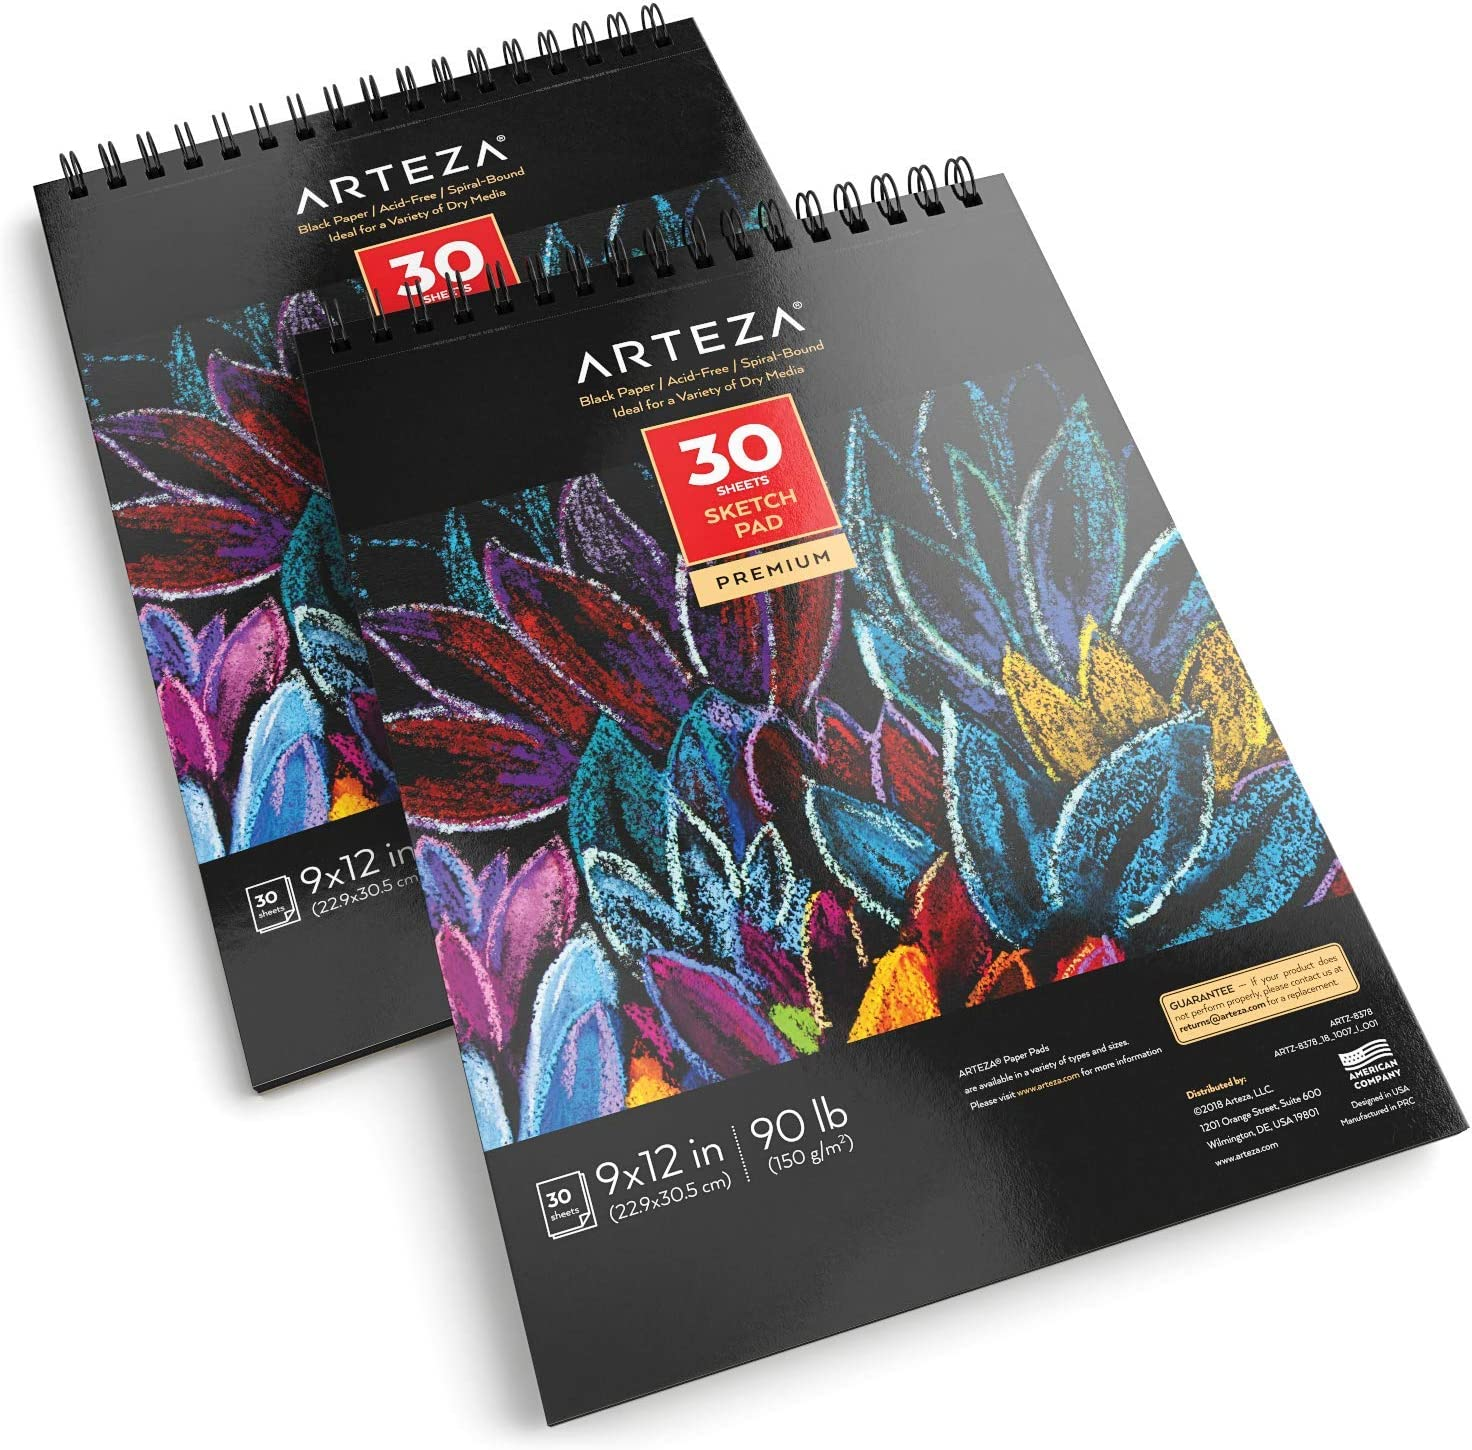 "Chalk 30 Sheets Each ARTEZA 9X12/"" Black Sketch Pad Charcoal Ink Pack of 2 Heavyweight Paper Perfect for Graphite /& Colored Pencils Spiral-Bound 90lb//150gsm 60 Sheets Oil Pastels Gel Pens"